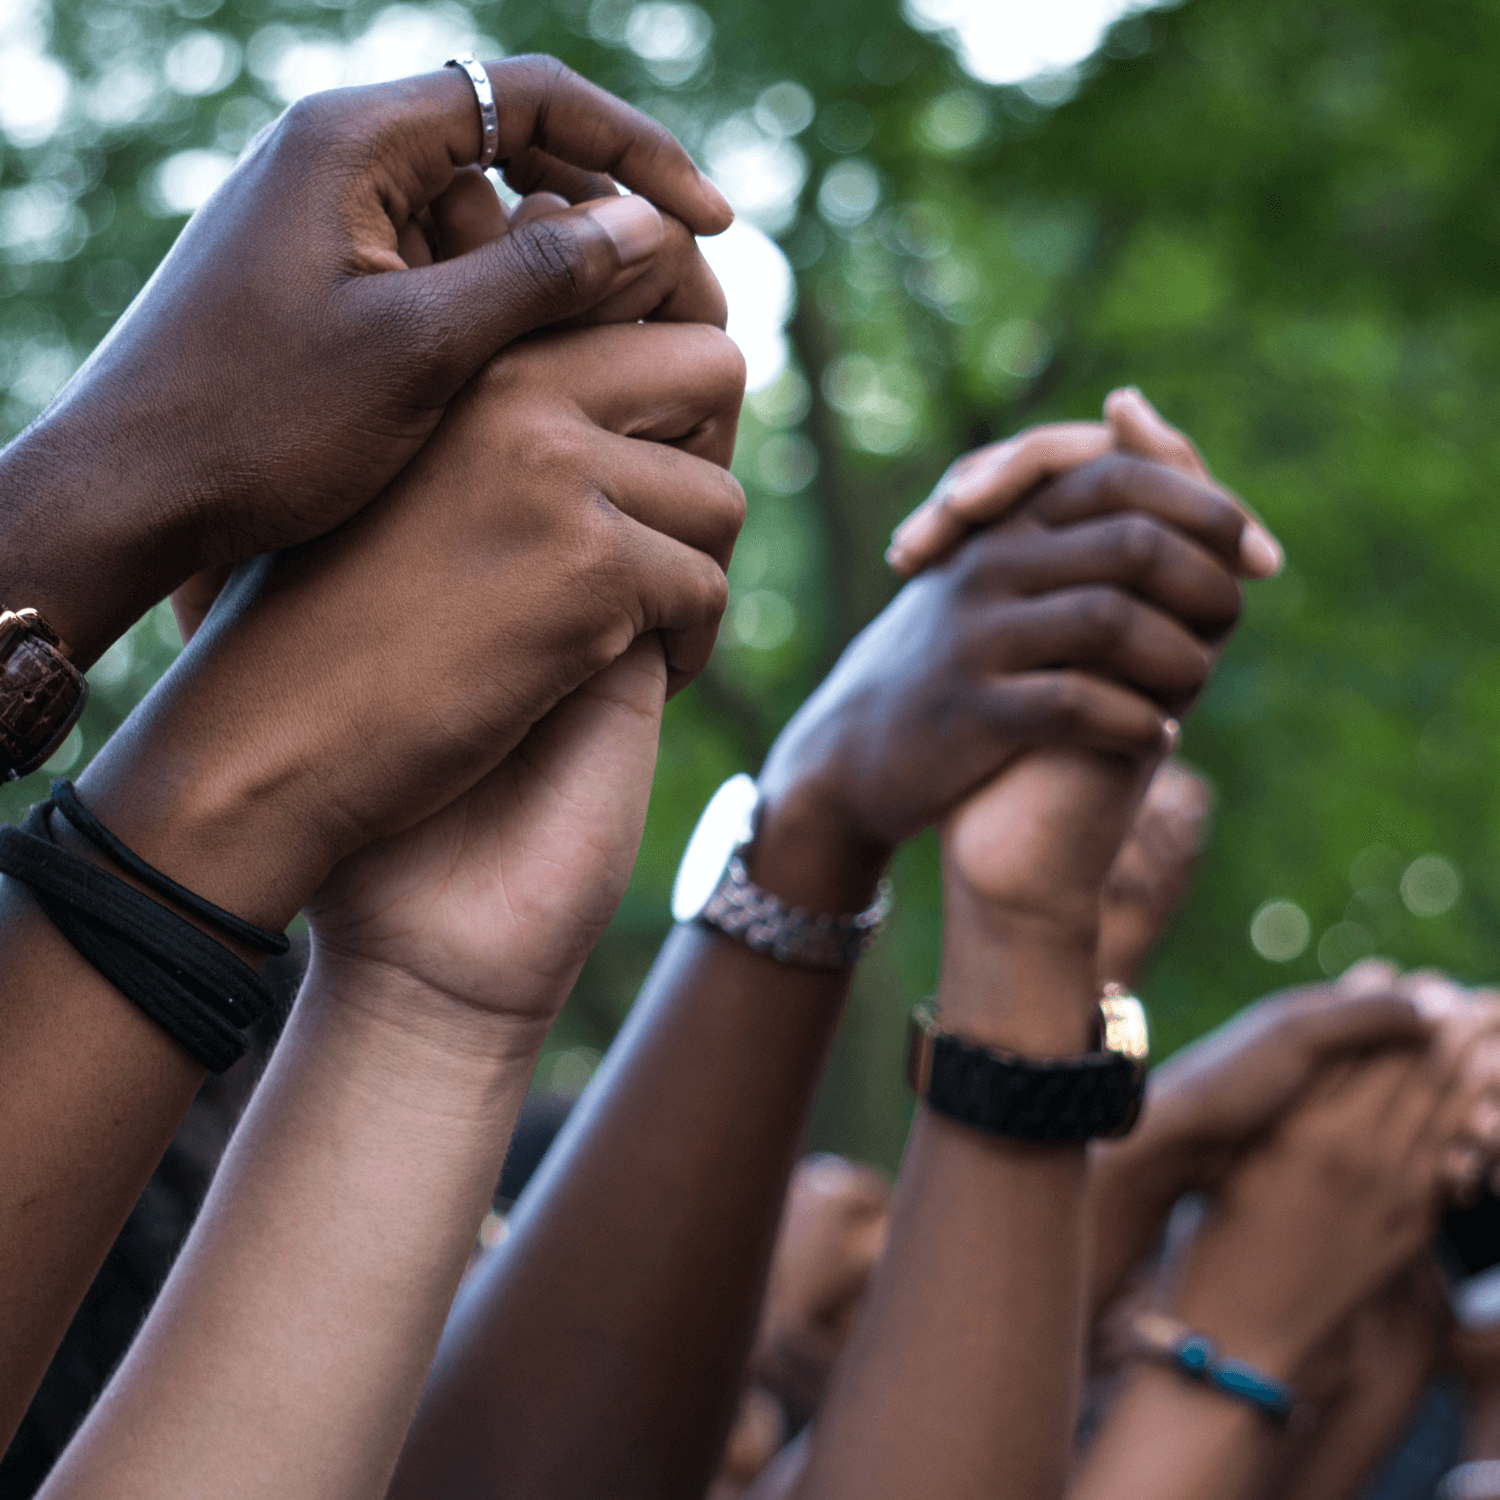 multiracial hands clasped together overhead in protest